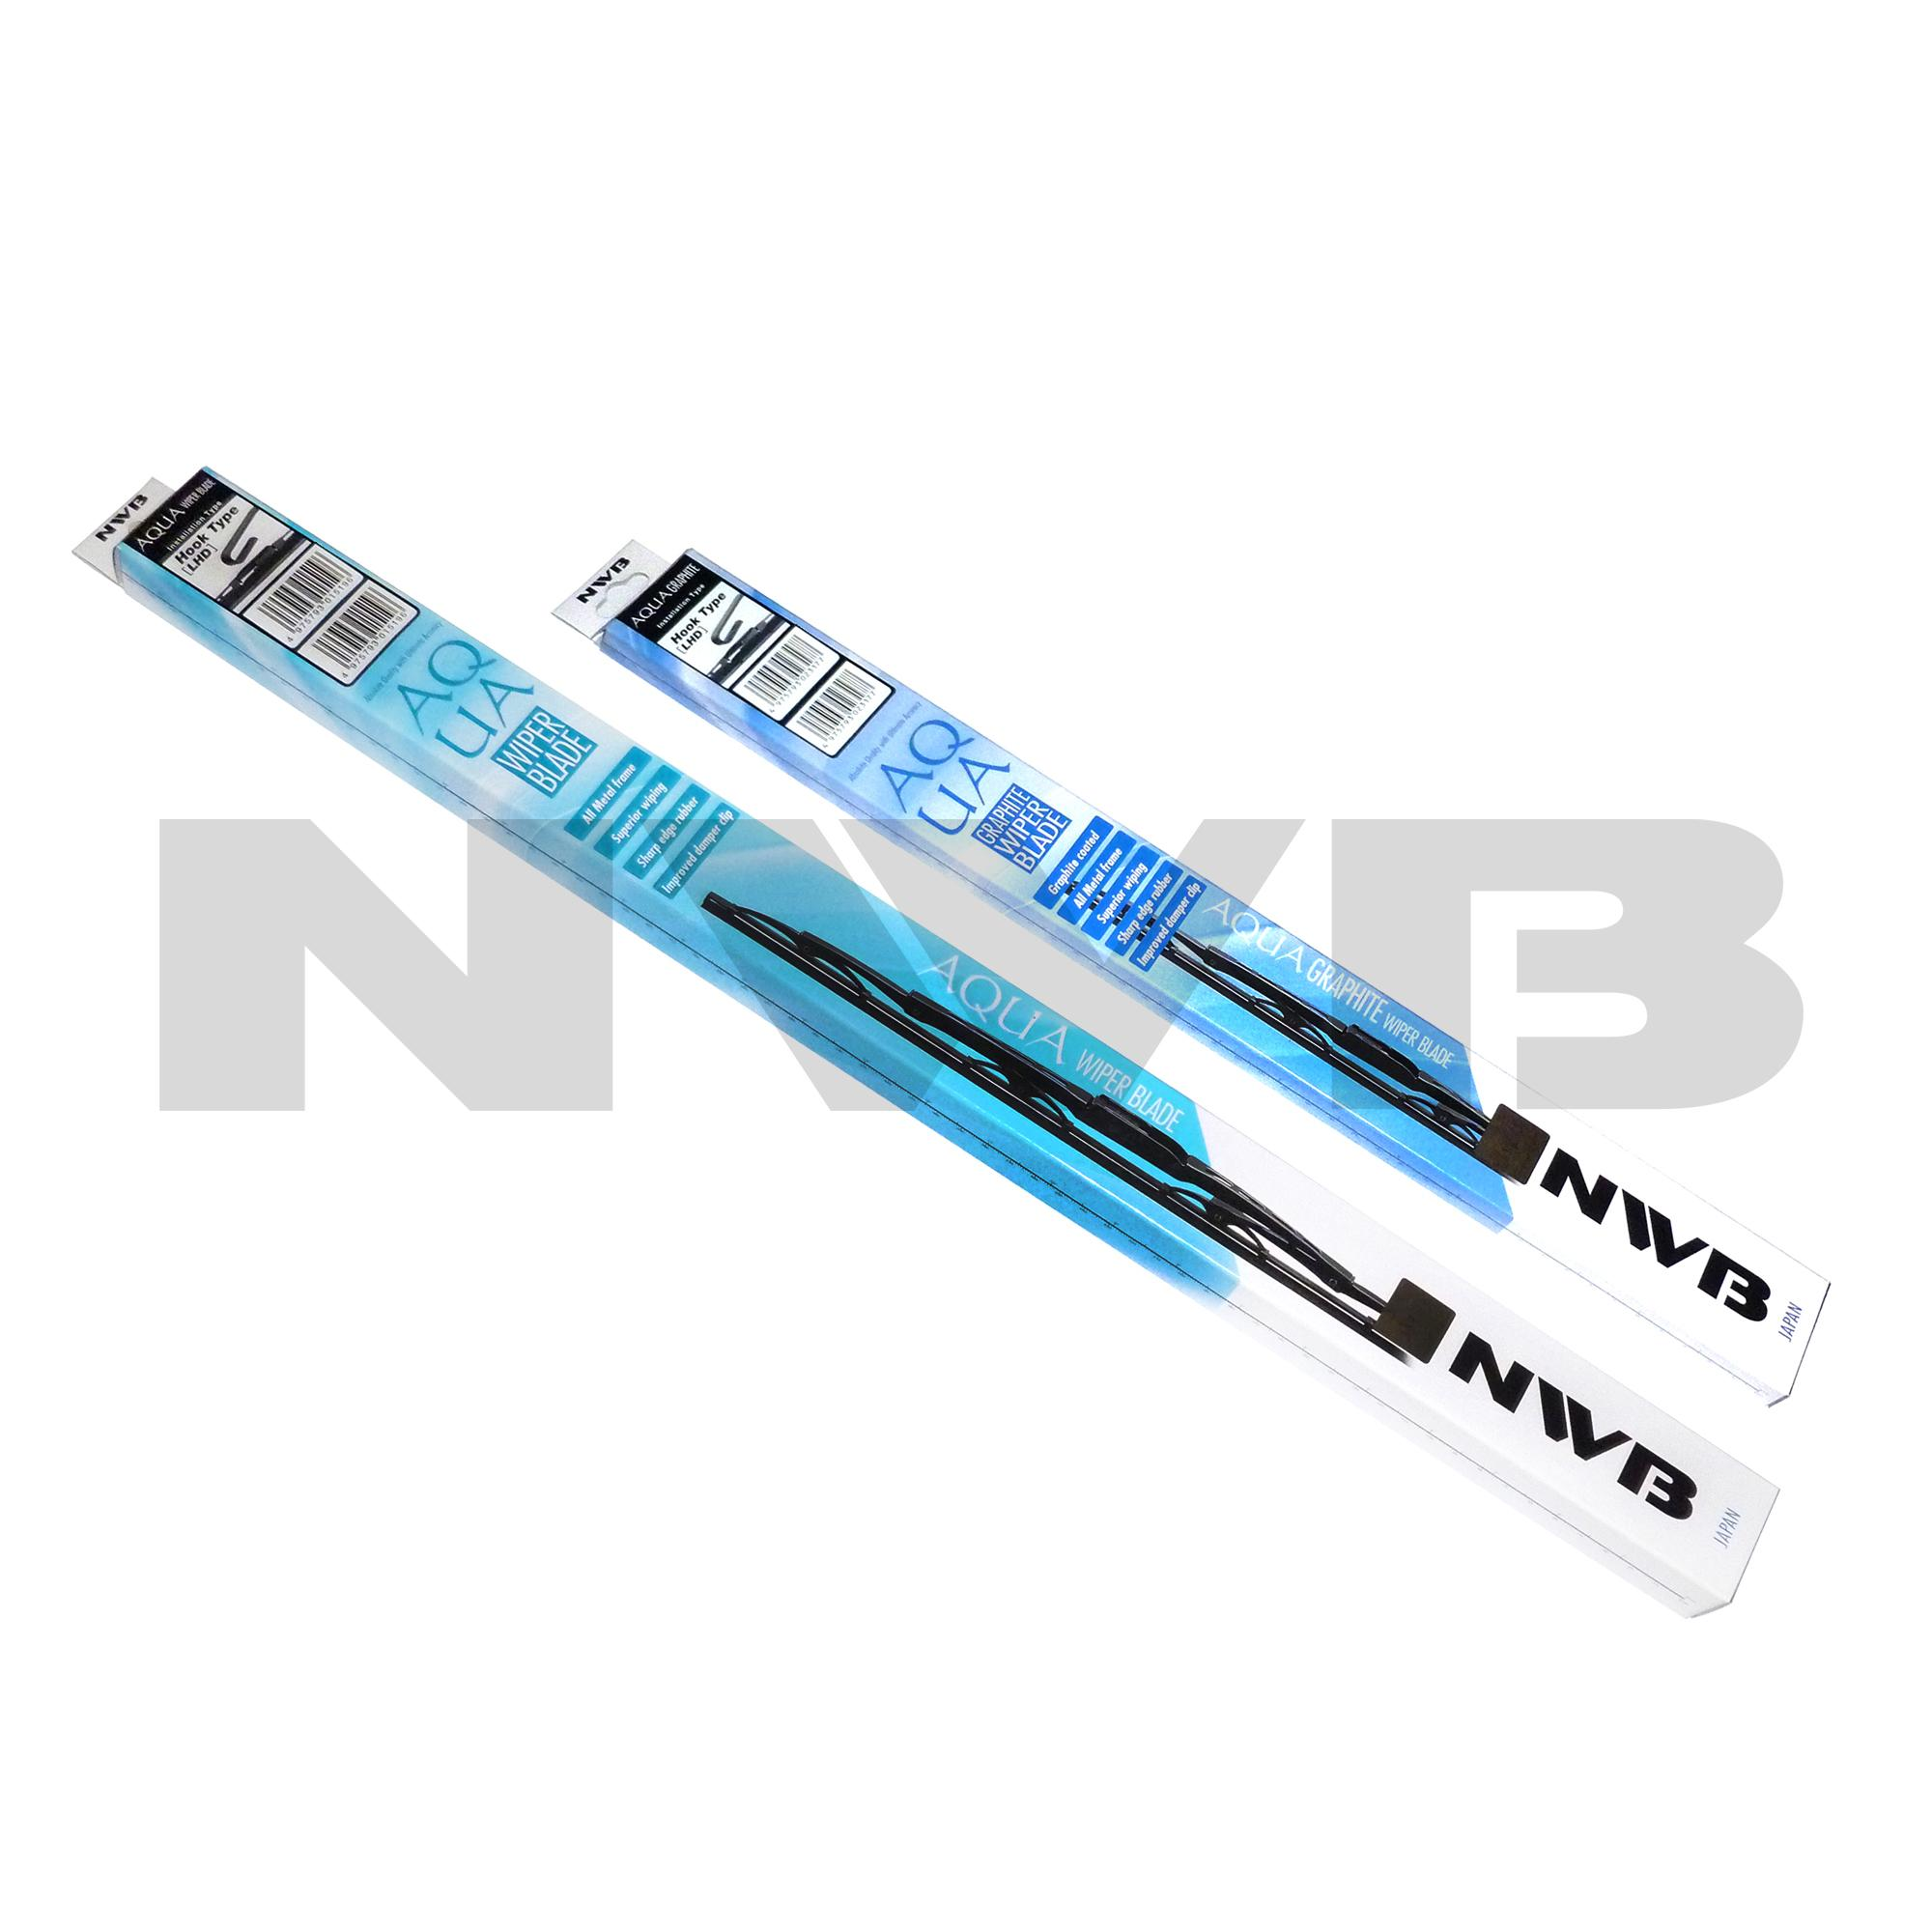 NWB AQUA Wiper Blade for Hyundai i10 2009-2015 - (SET)